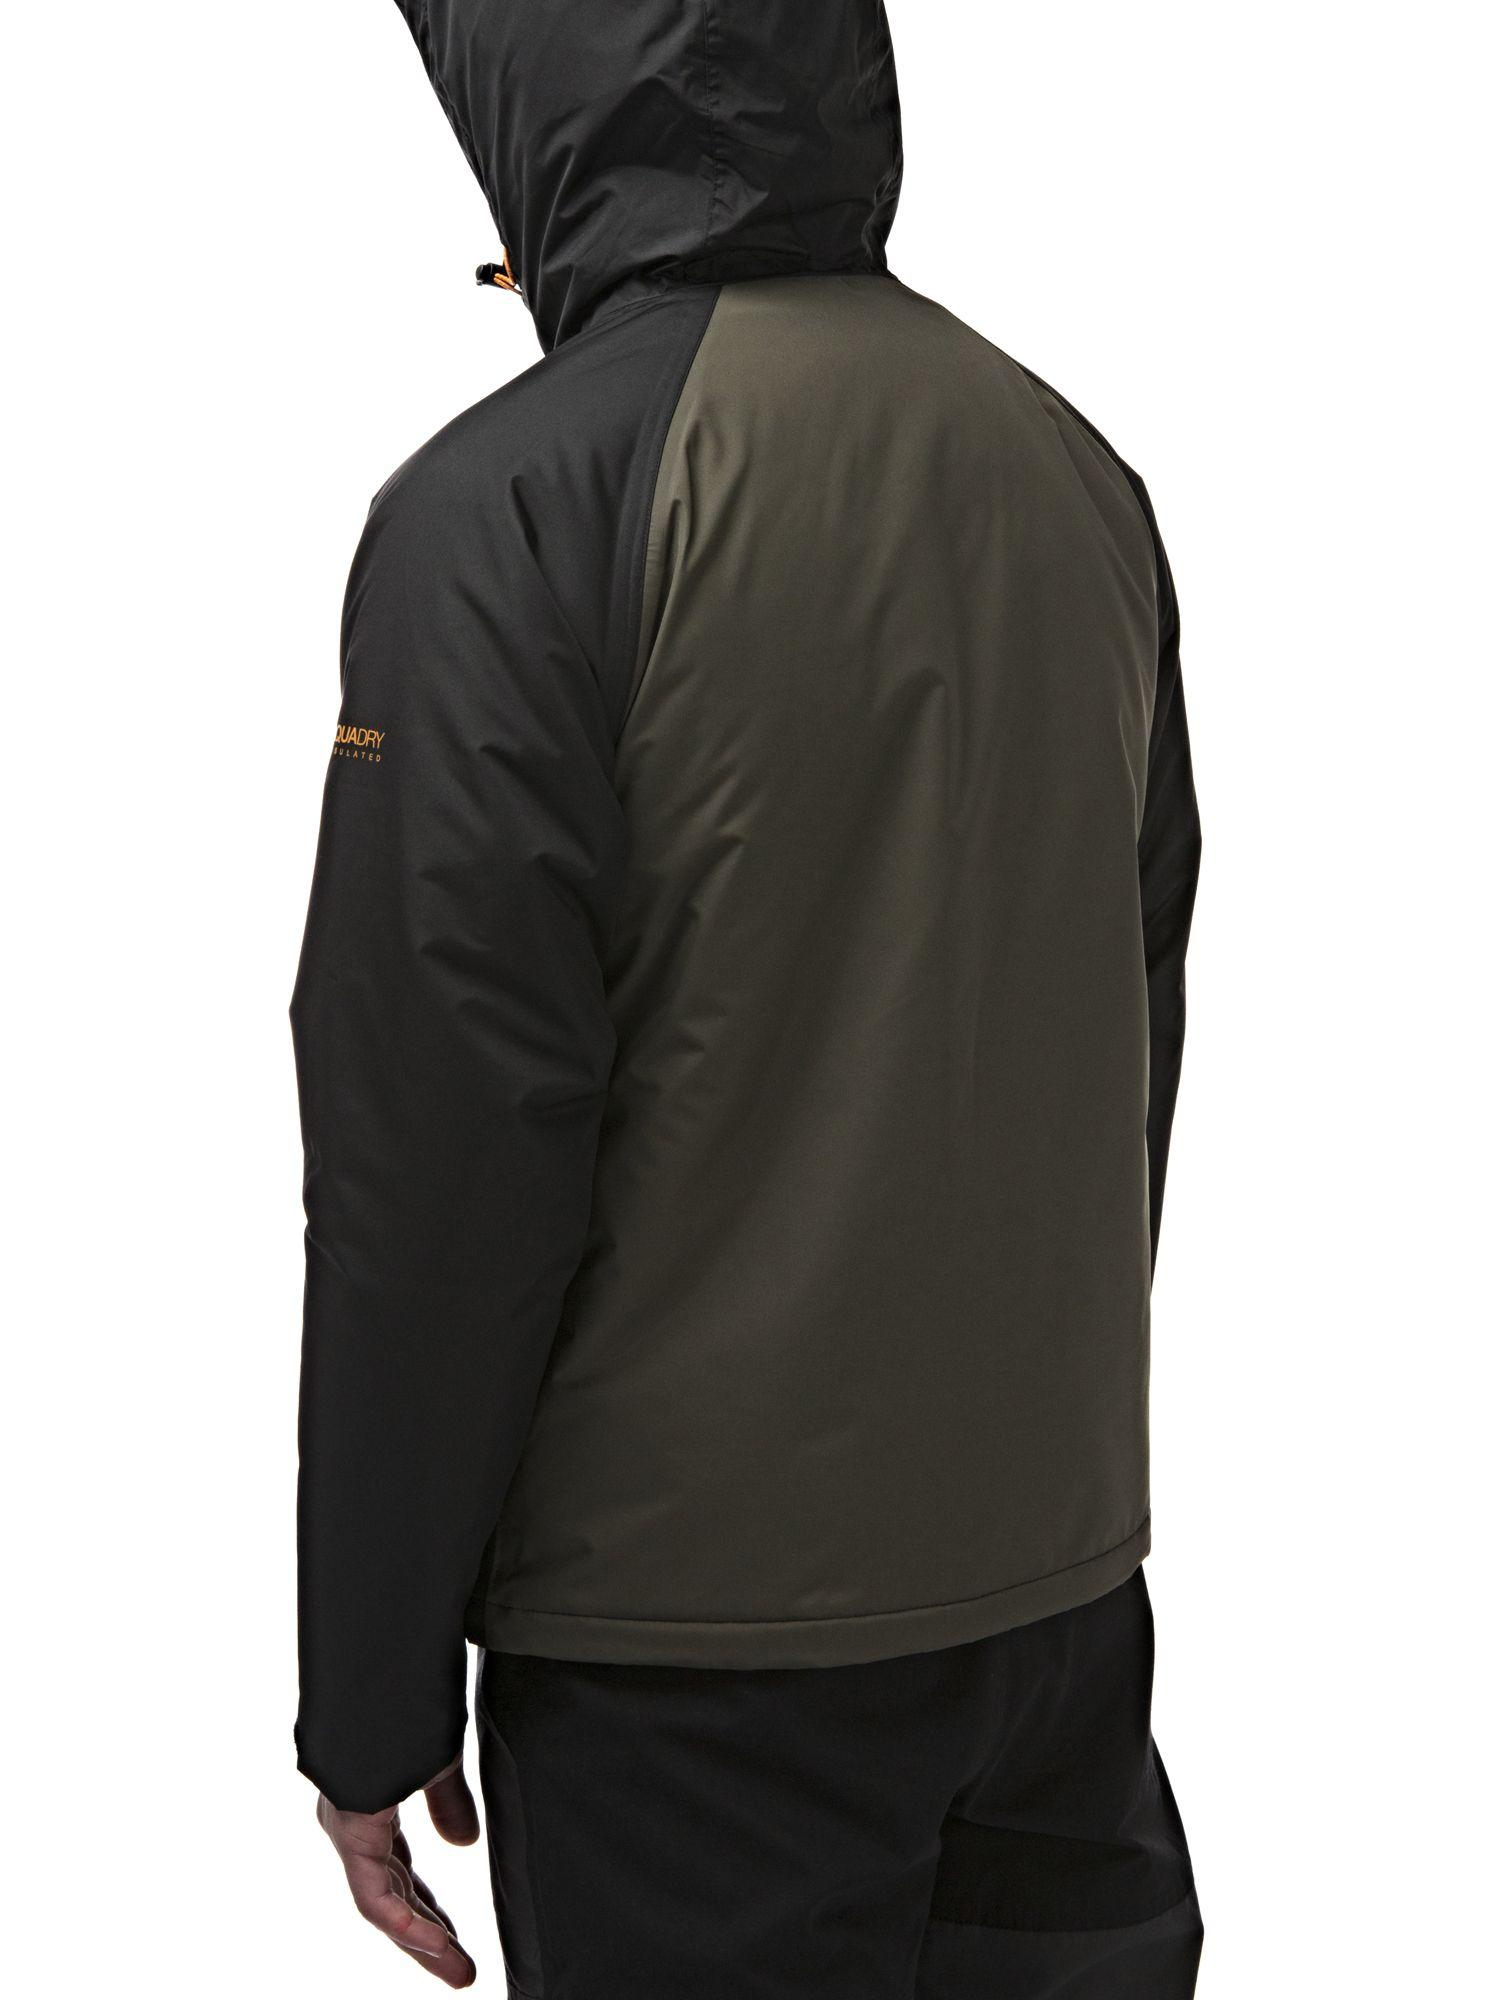 Craghoppers Synthetic Bg Core Insulated Jacket in Green for Men